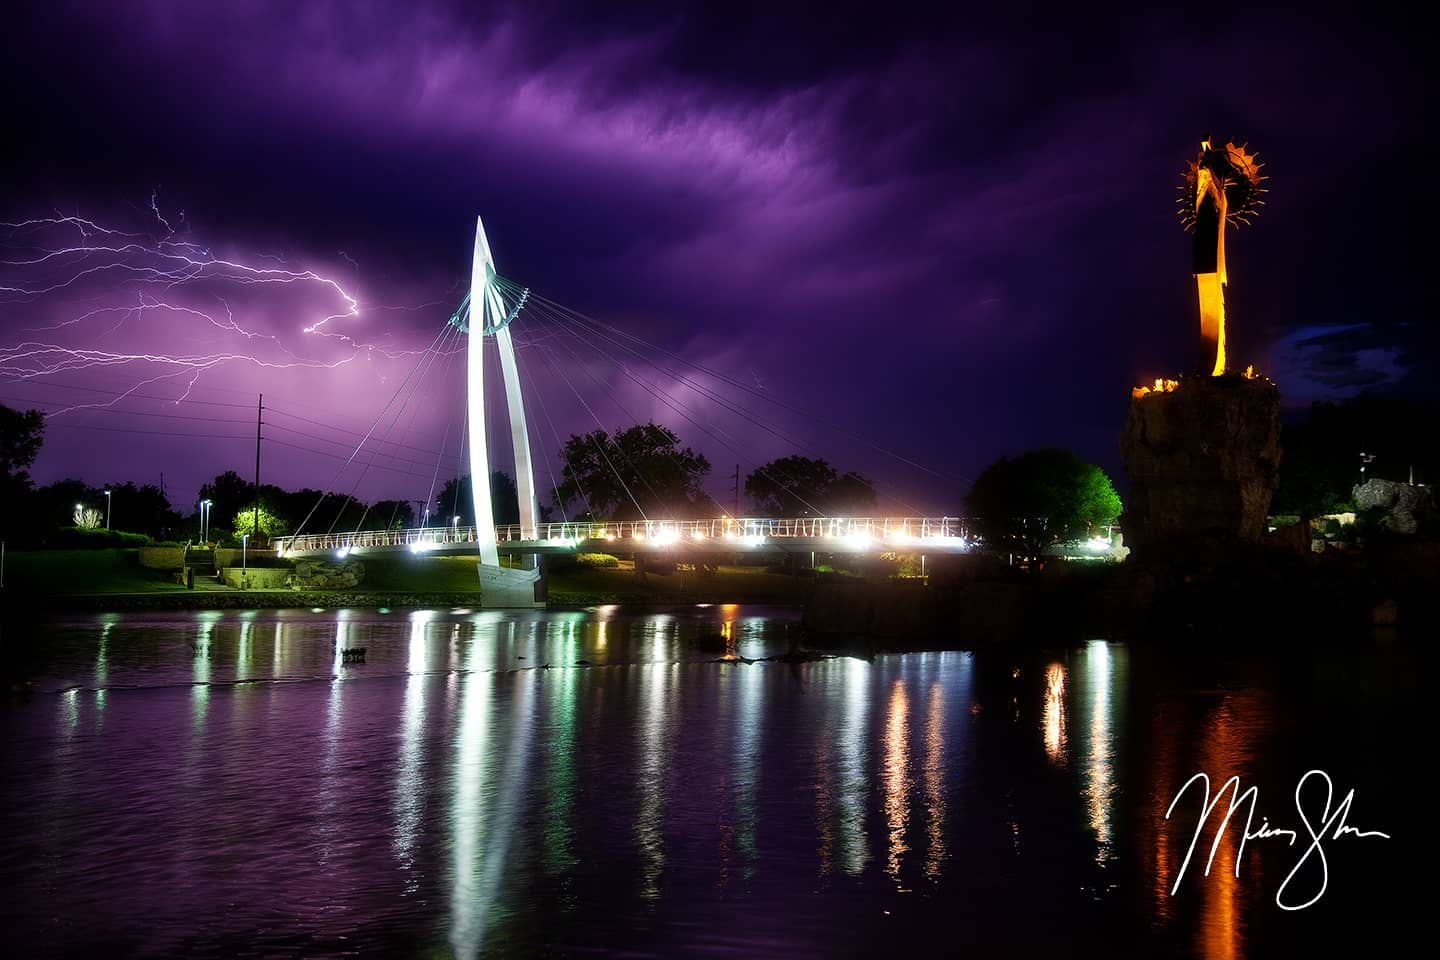 Open edition fine art print of Keeper of the Plains Lightning from Mickey Shannon Photography. Location: Wichita, Kansas